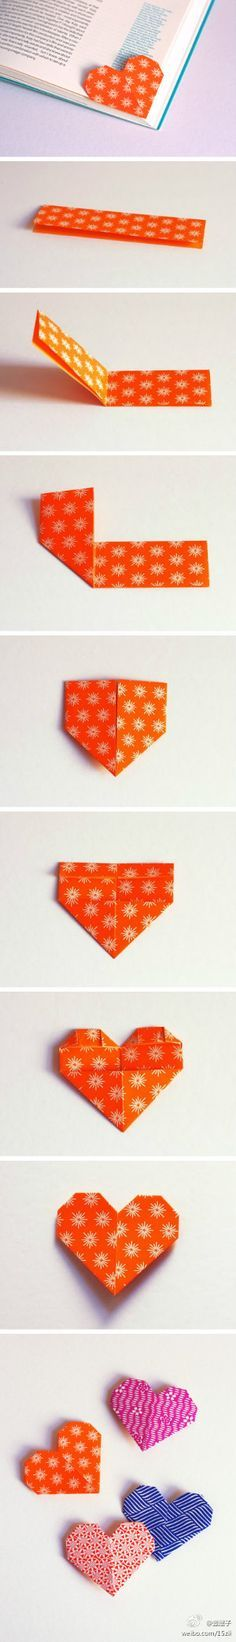 DIY and Craft Idea 748 - Another DIY Idea